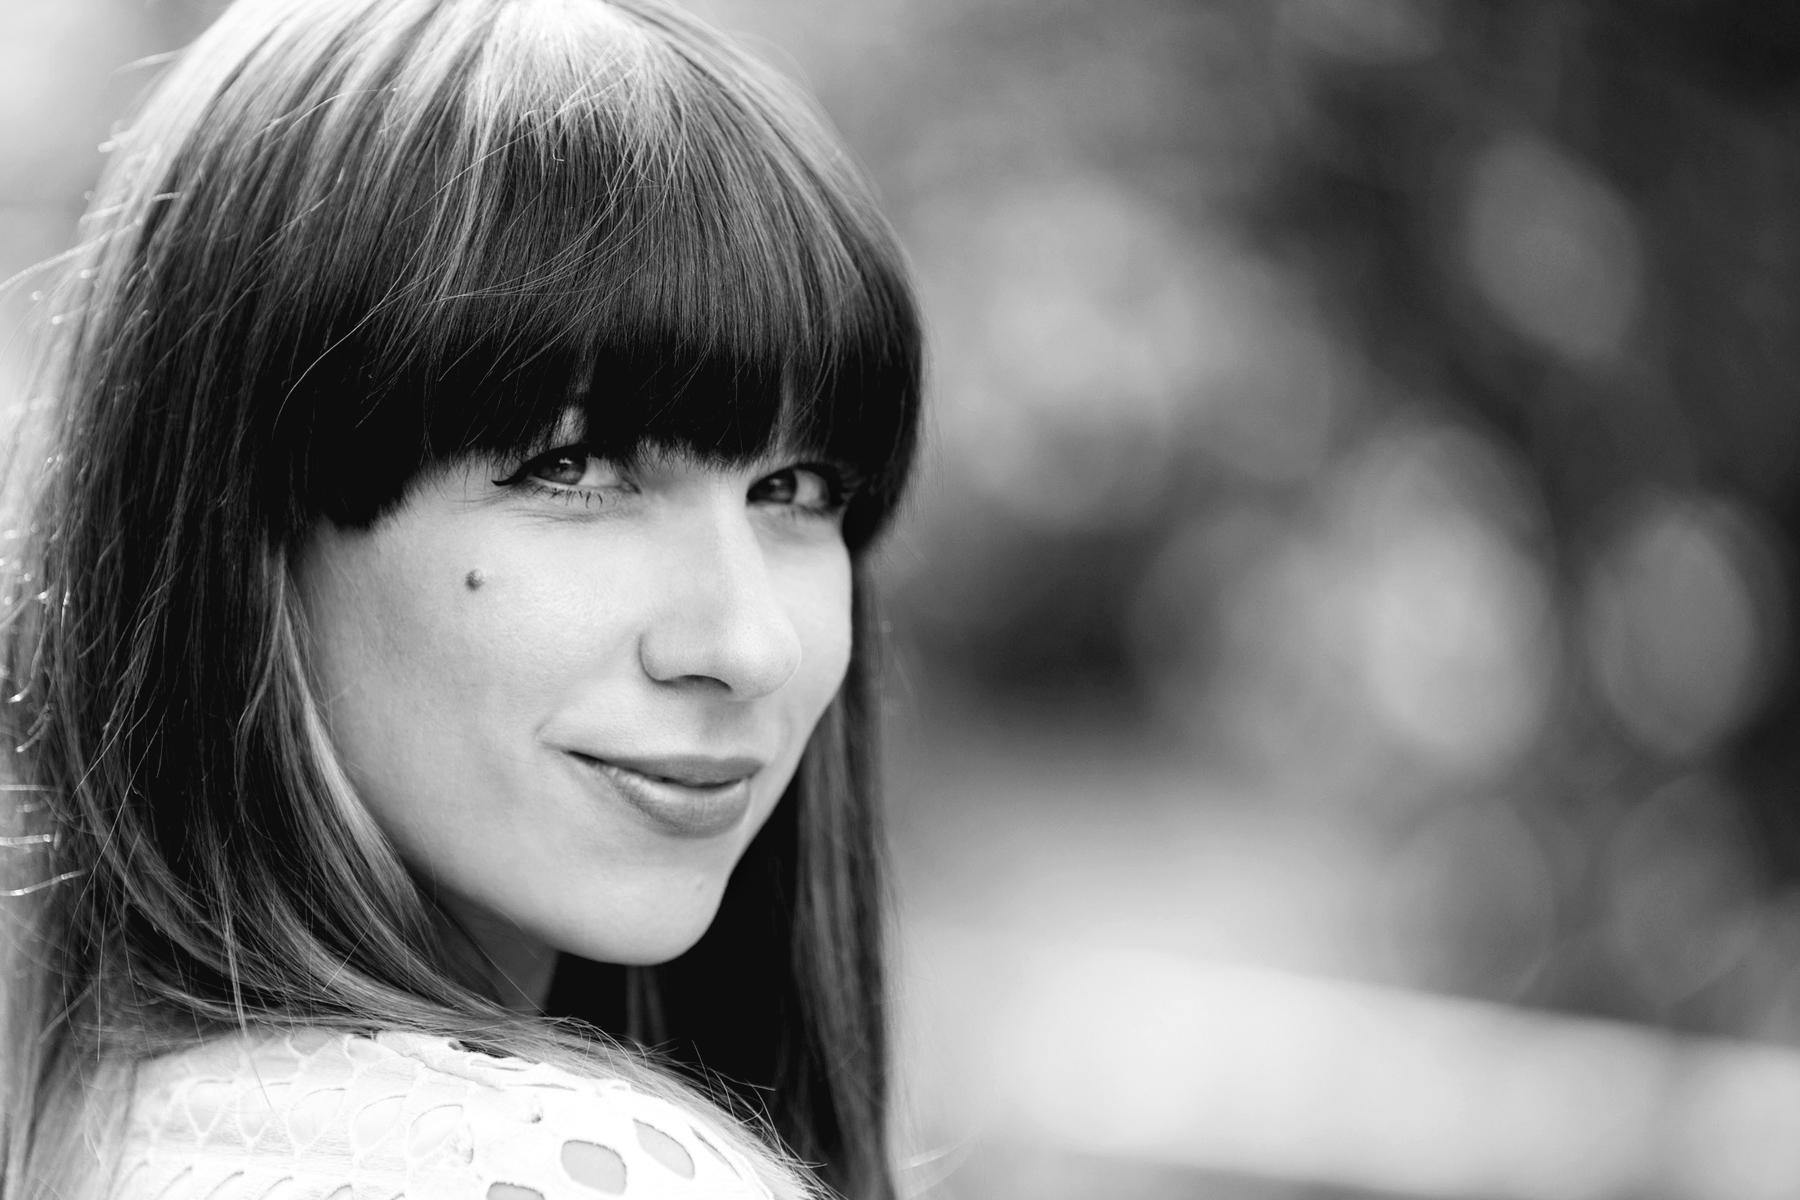 portrait black and white intense look summer smile respect happiness ricarda schernus bangs girl french german blogger düsseldorf hannover berlin modeblog 2